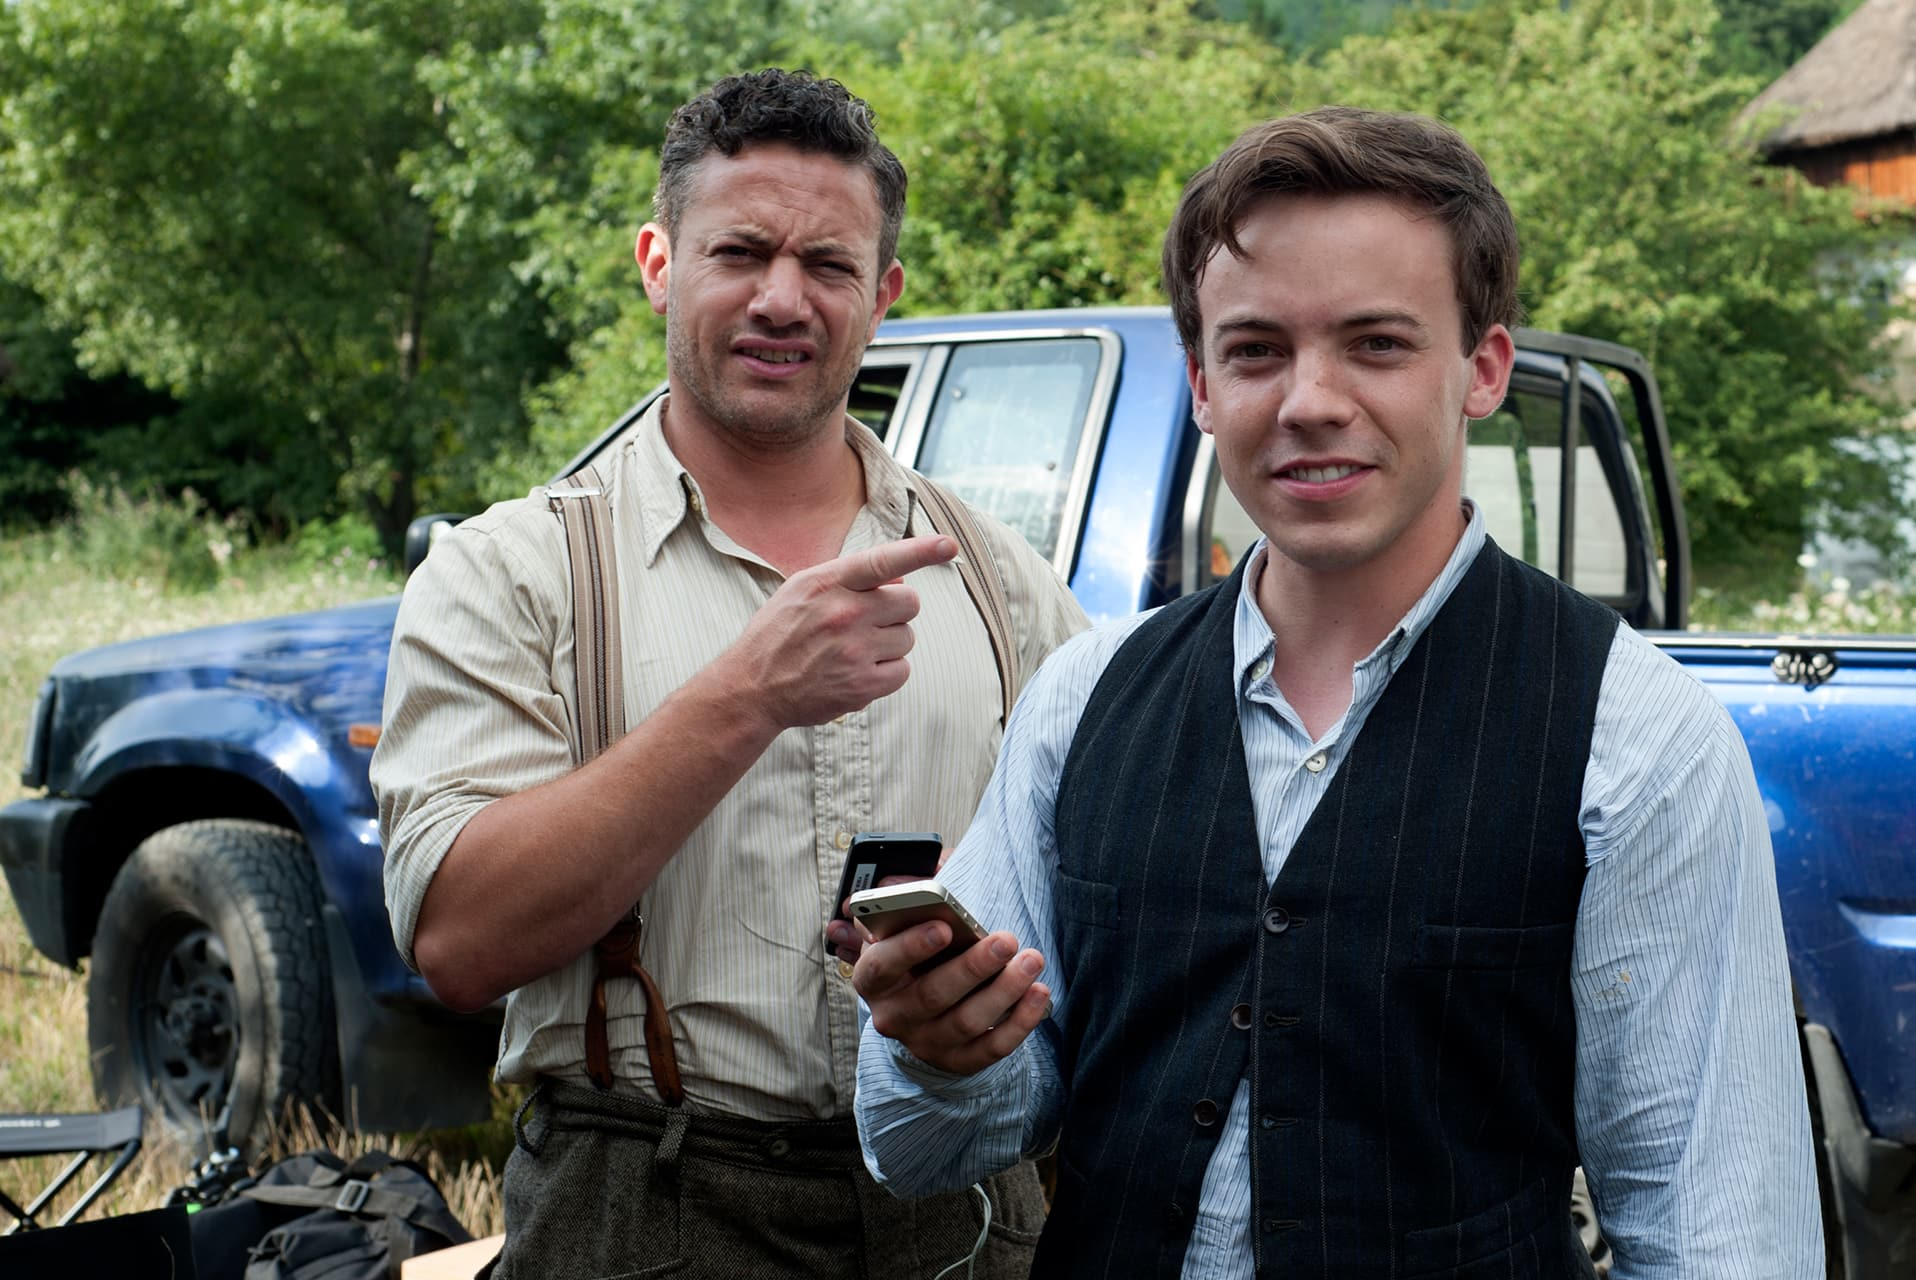 Warren Brown (Neil) and Connor Price (Harry) on the set of X Company Season 3 in Budapest, Hungary.